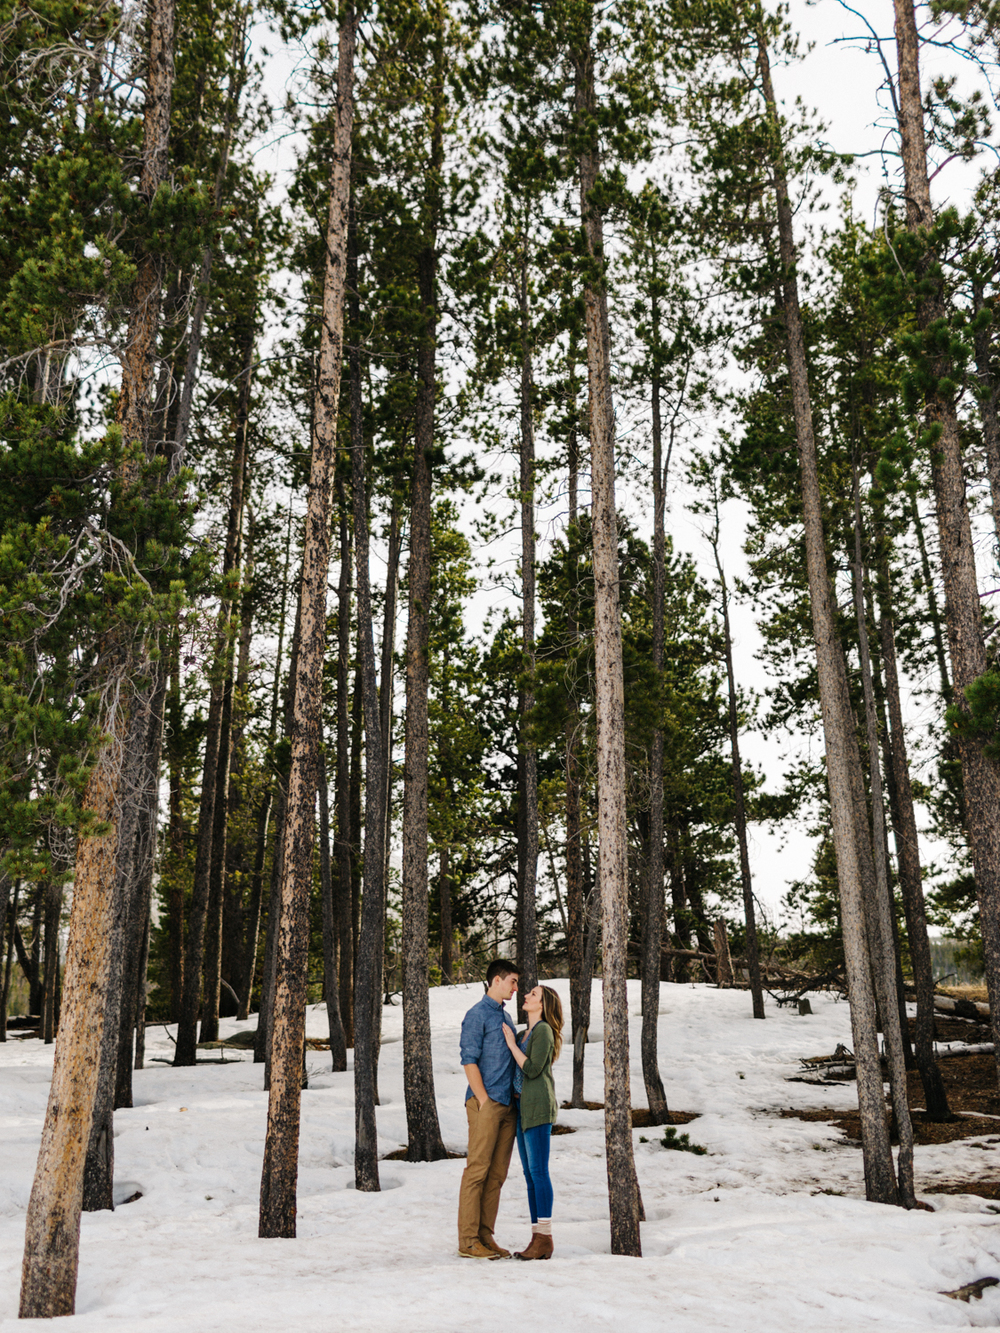 Colorado Engagement Photography-Rocky Mountain National Park-Colorado Photographer-Colorado Wedding Photographer-Estes Park, Colorado-134.jpg